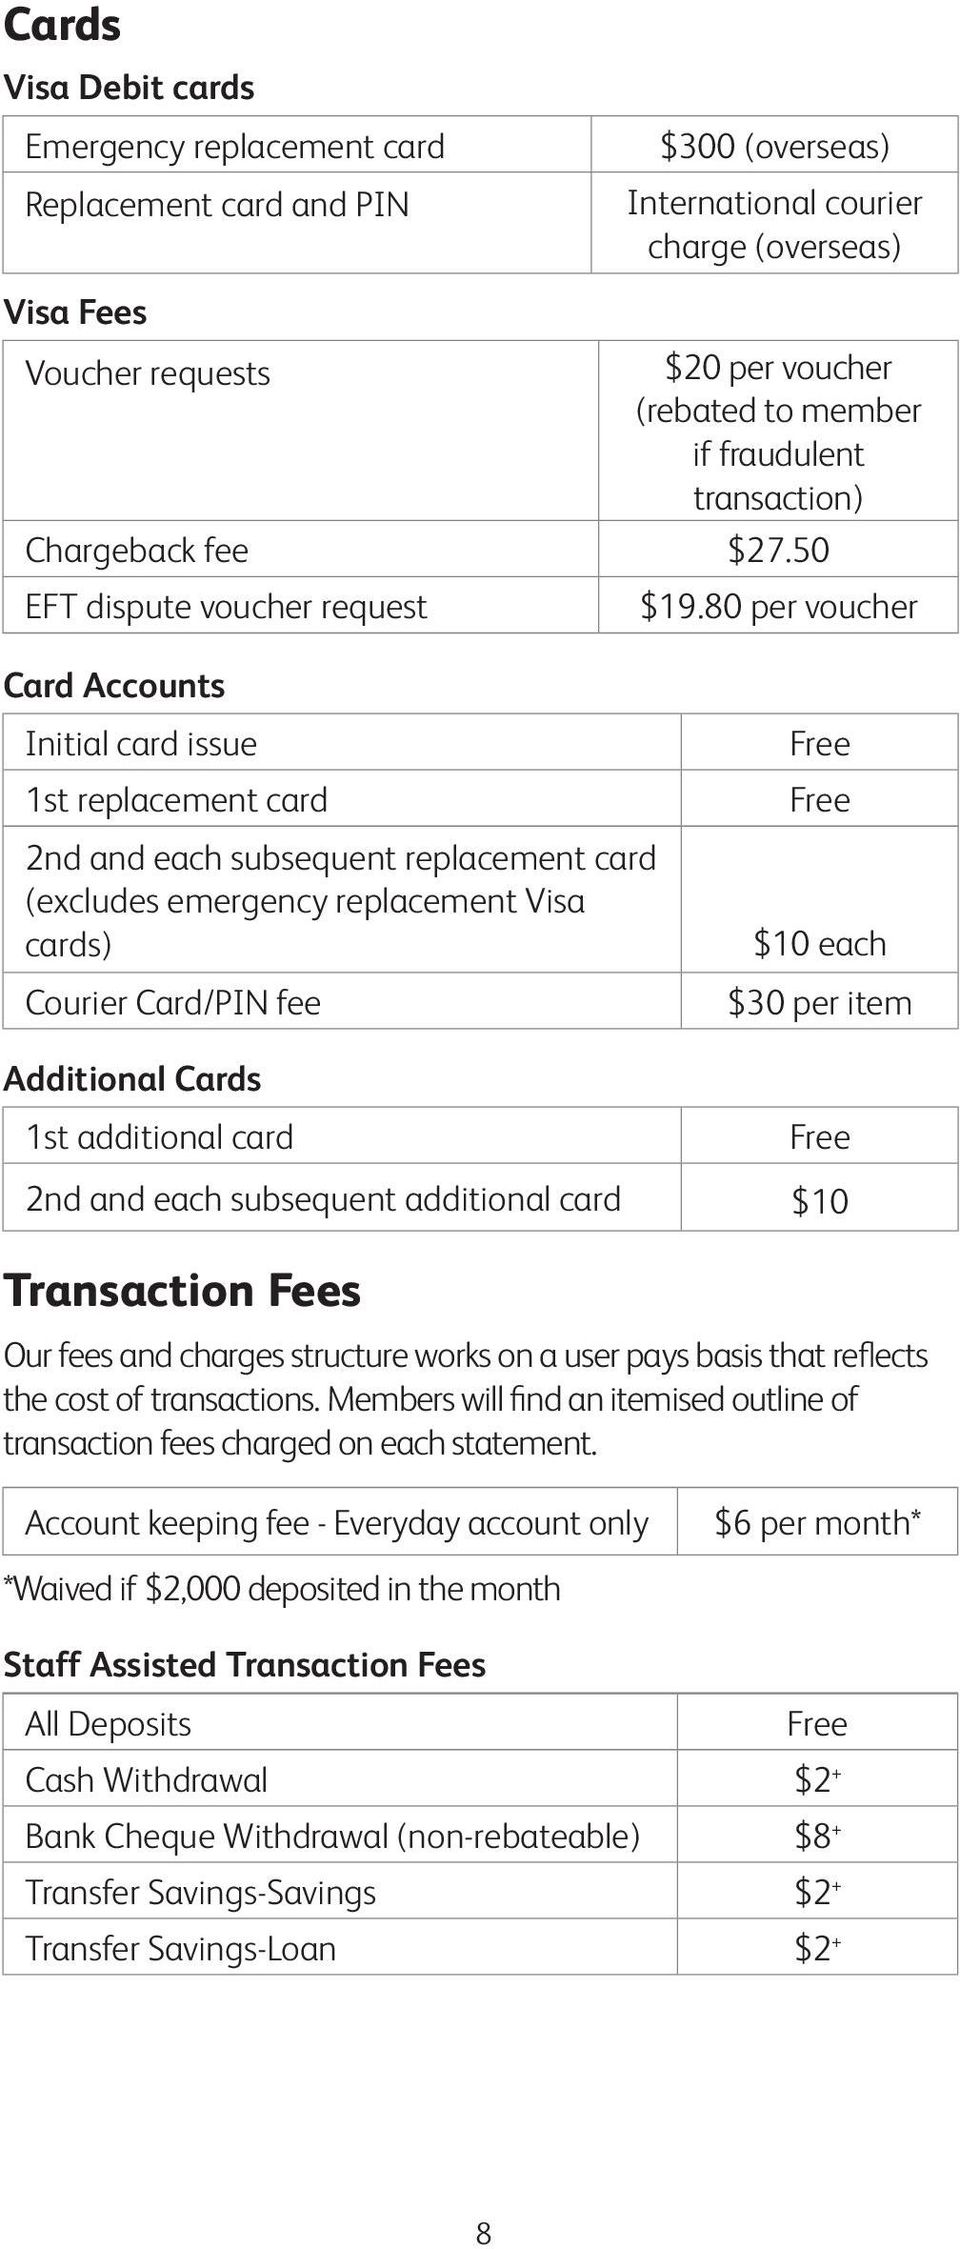 80 per voucher Card Accounts Initial card issue 1st replacement card 2nd and each subsequent replacement card (excludes emergency replacement Visa cards) Courier Card/PIN fee Additional Cards 1st